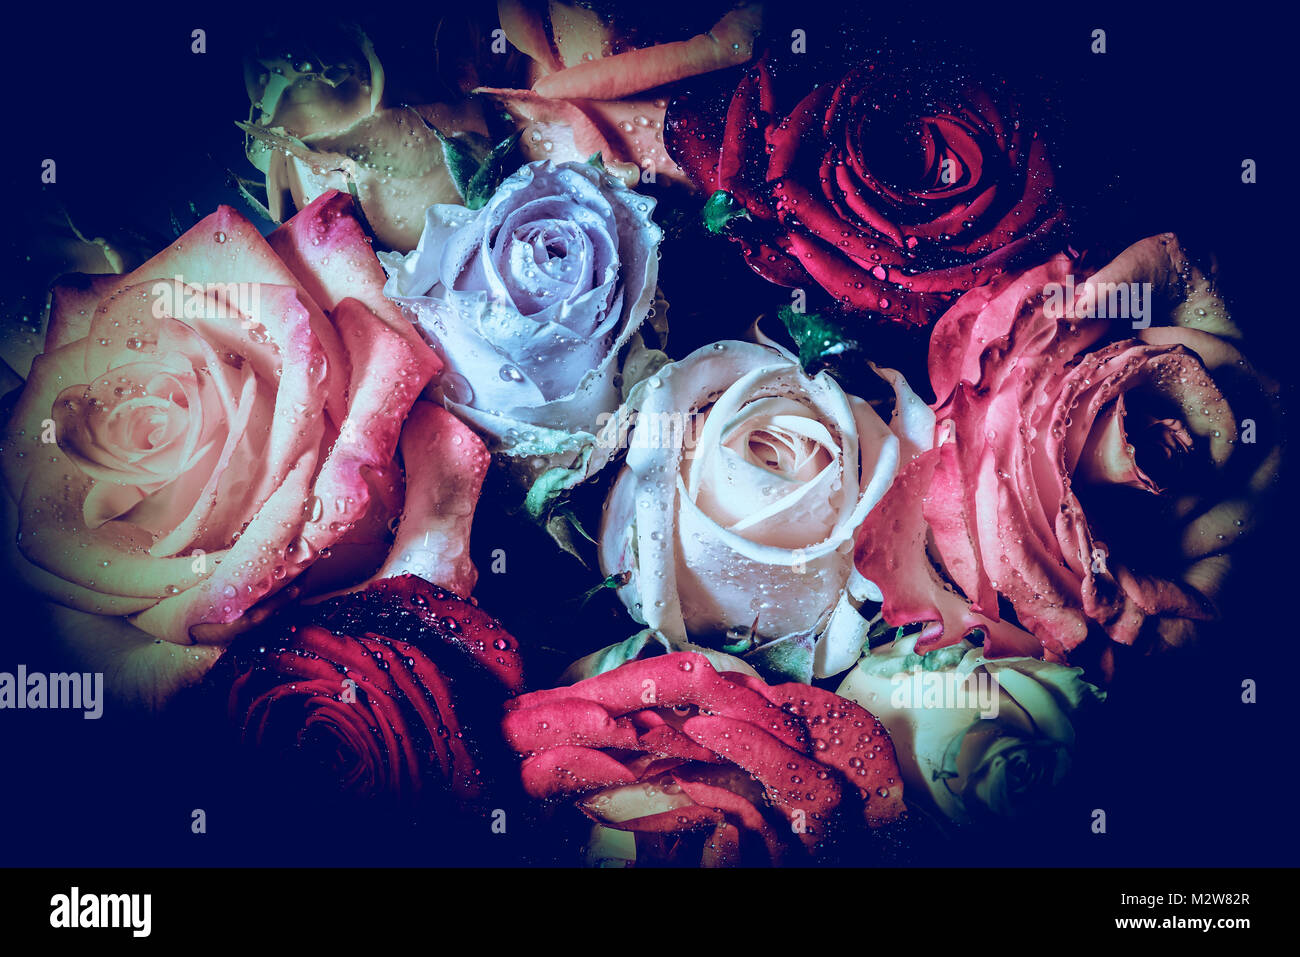 Colourful roses, bunch of roses, symbolism, love - Stock Image